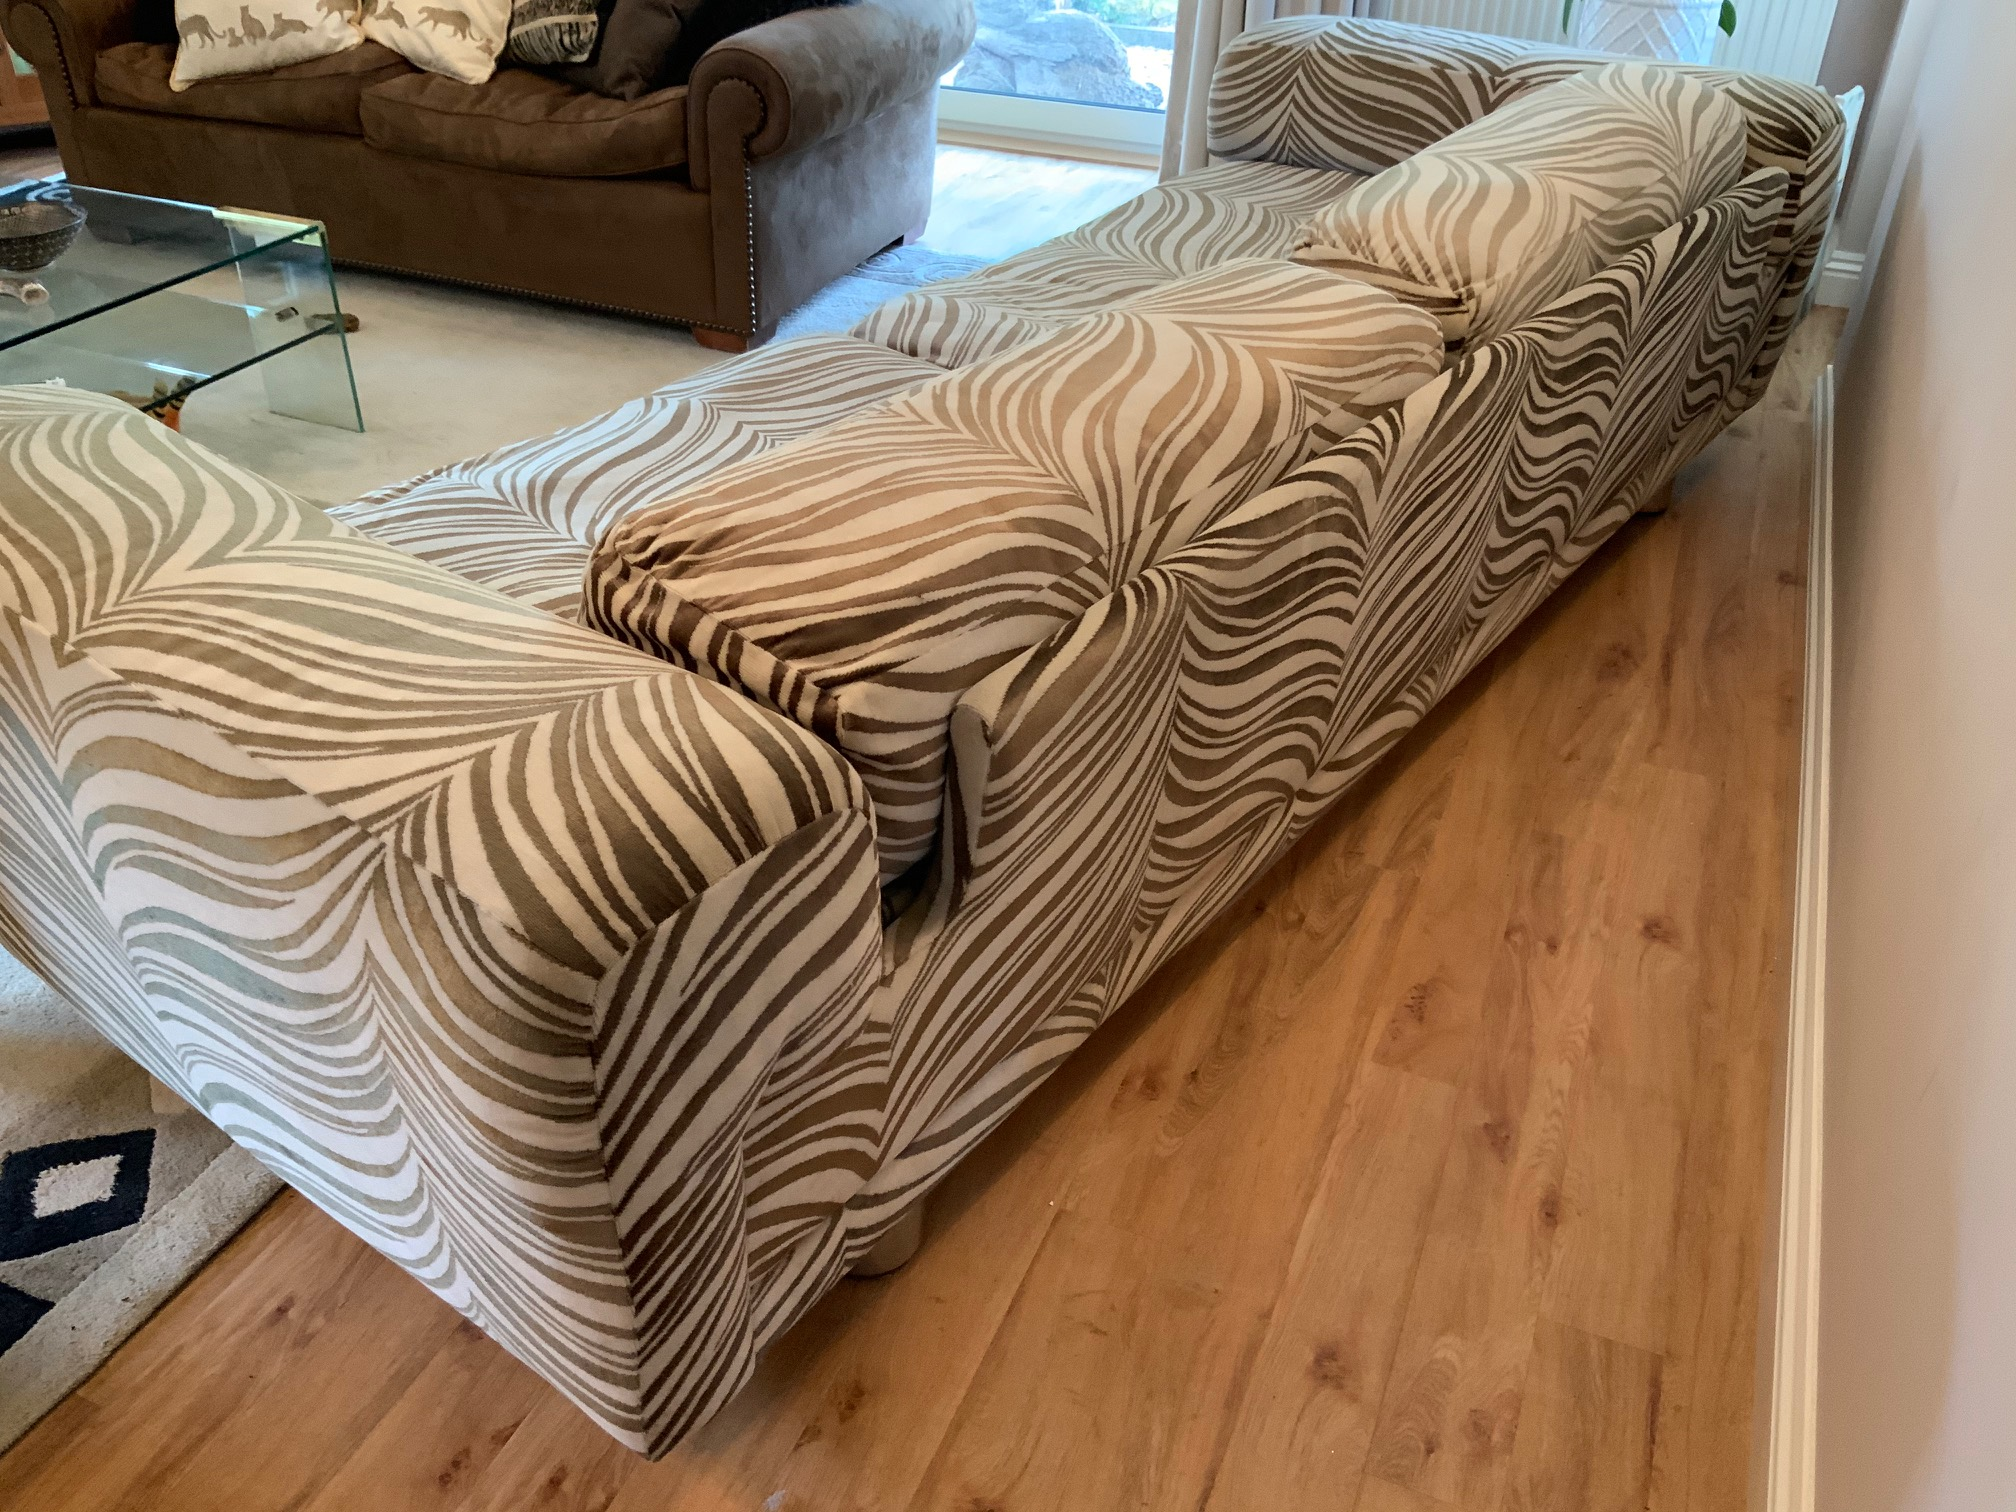 Howard Keith Diplomat sofa, zebra velour fabric, vintage